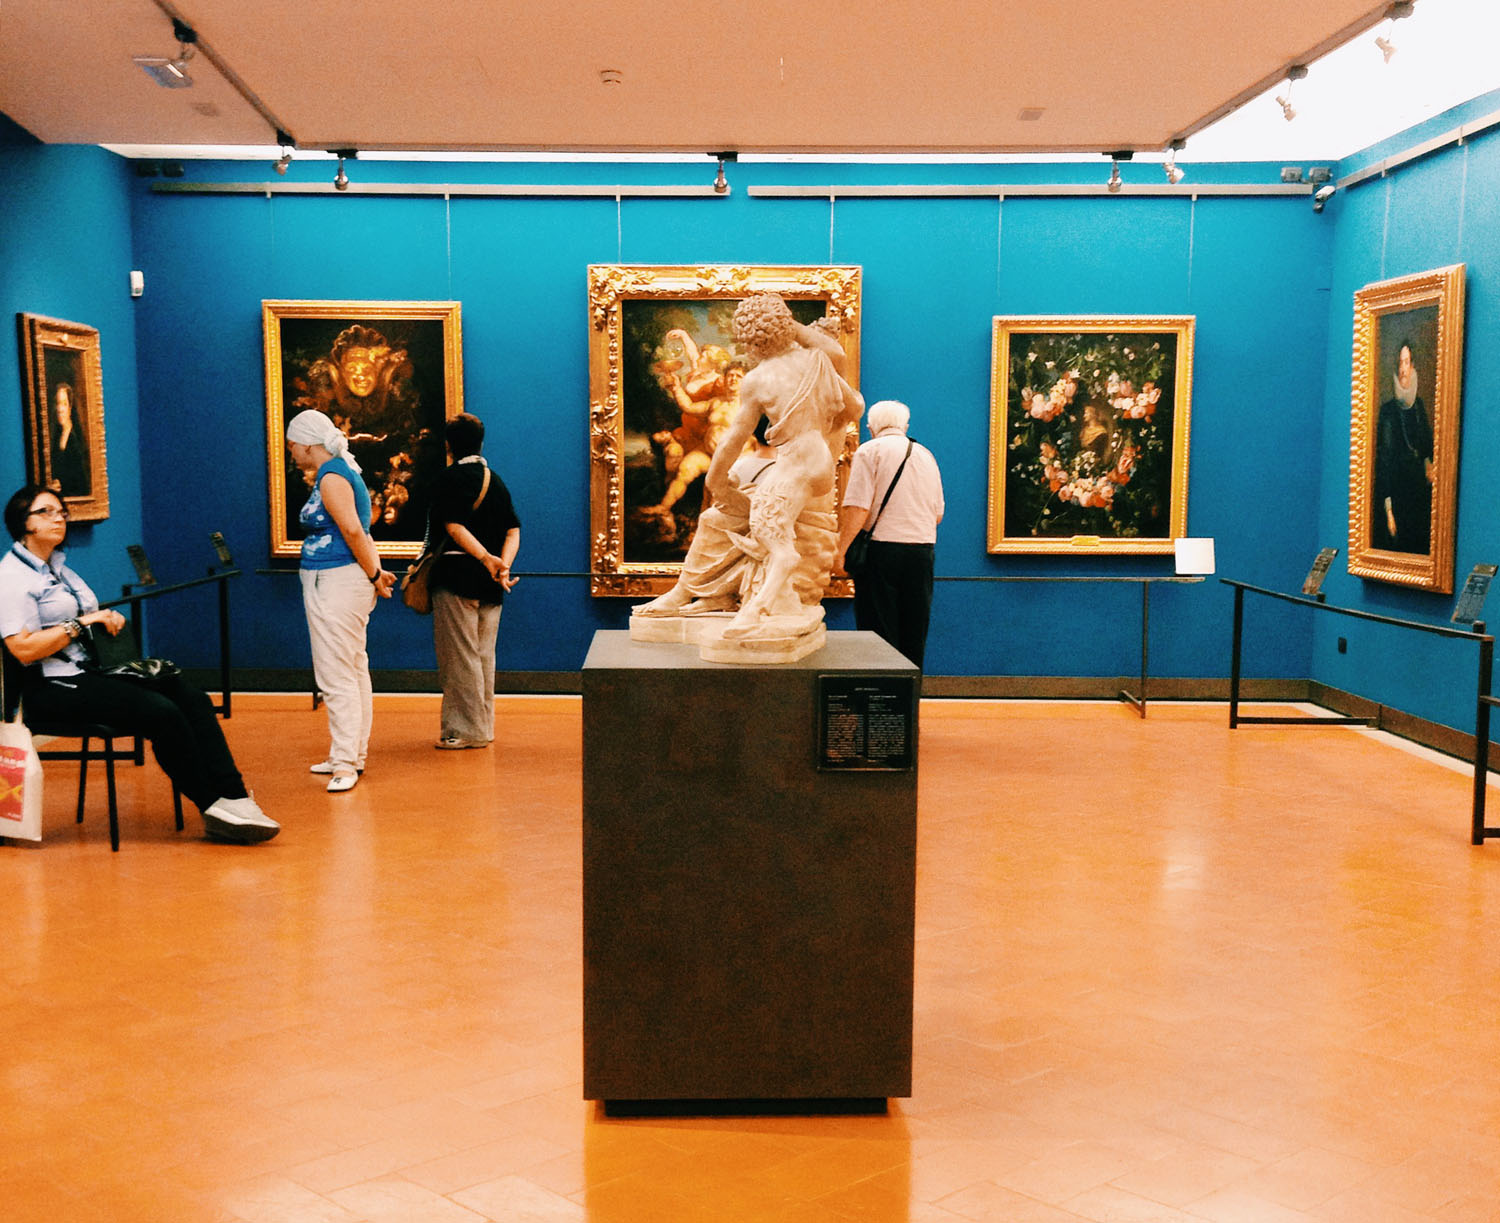 Photographing the blue rooms at the Uffizi / with thanks to Giorgia http://instagram.com/aprivatekindofhappiness